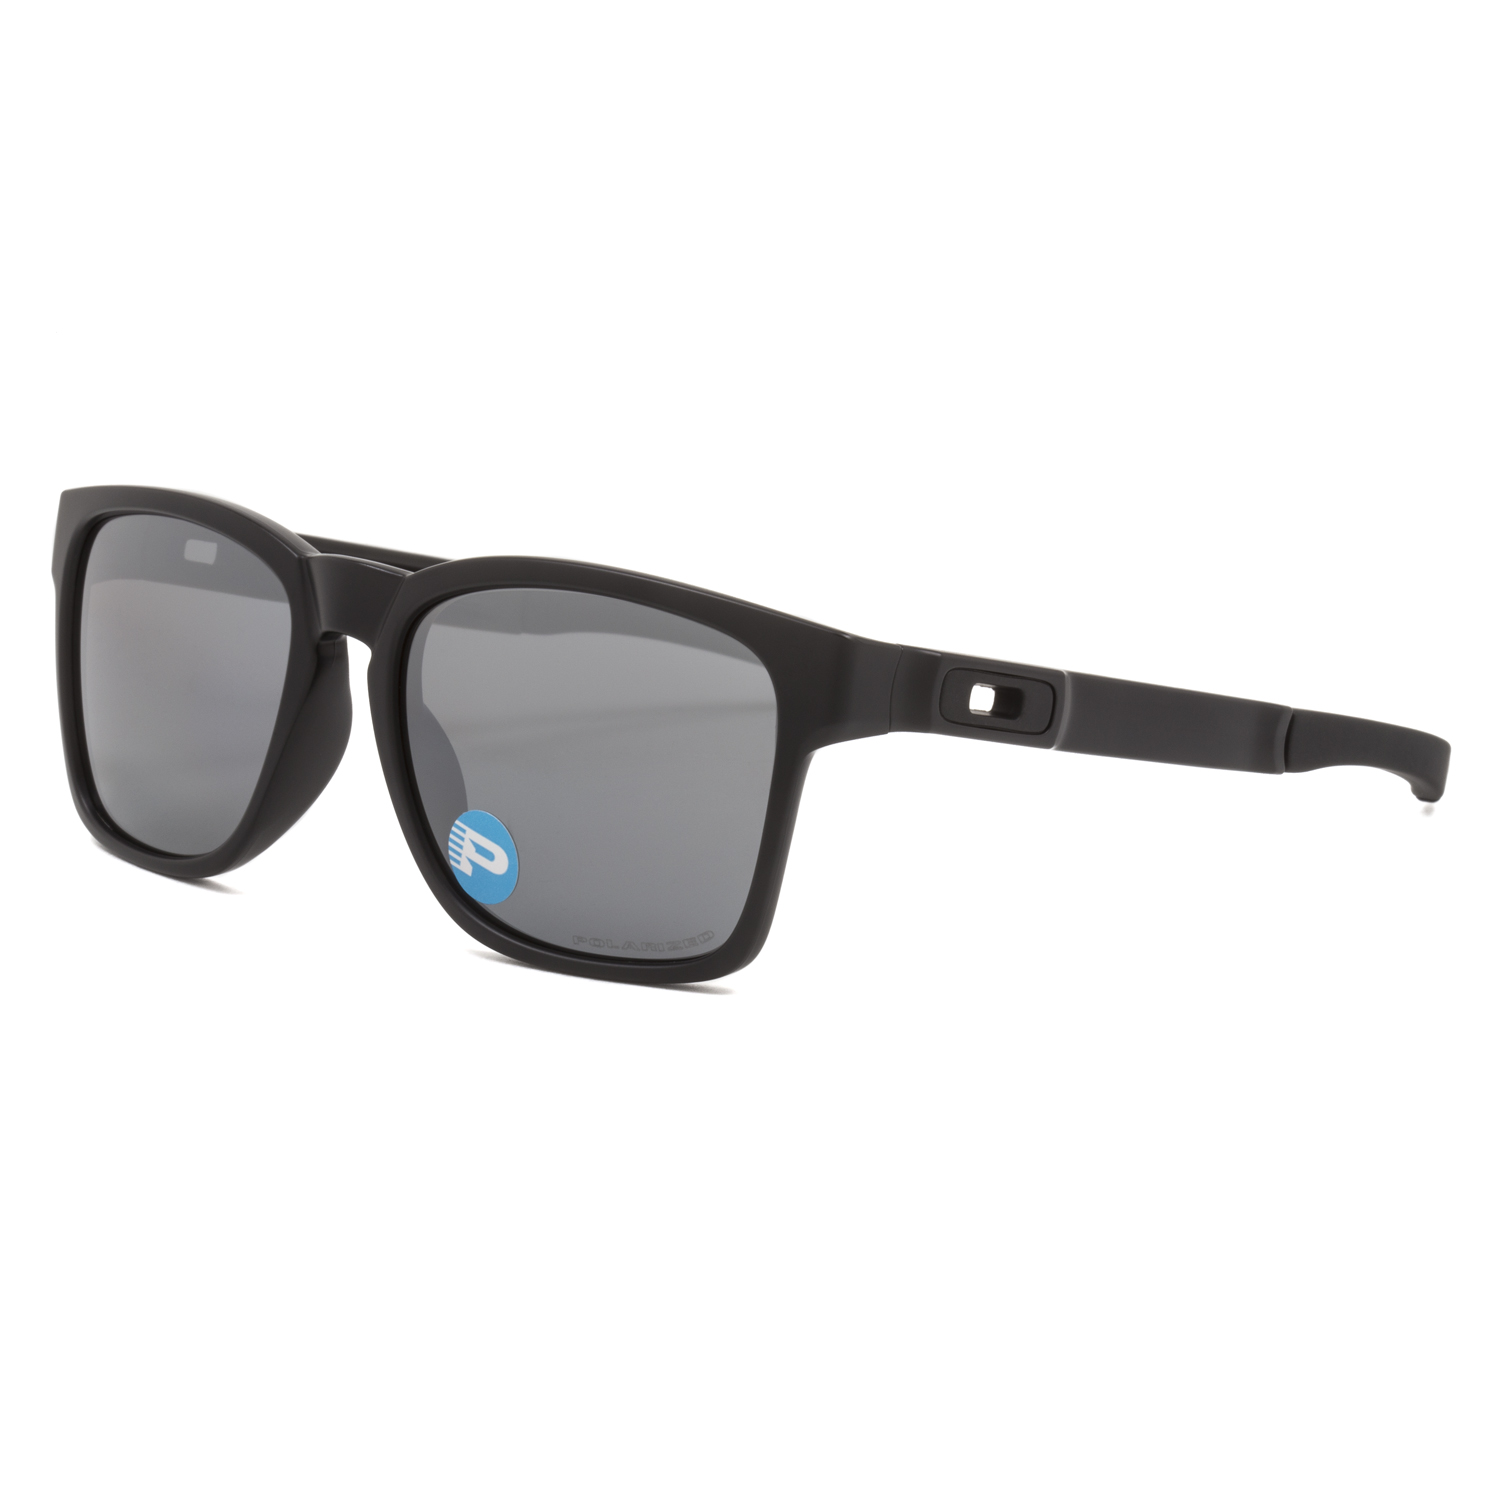 840c57cd707 Oakley Catalyst Sunglasses OO9272-09 Matte Black   Black Iridium ...